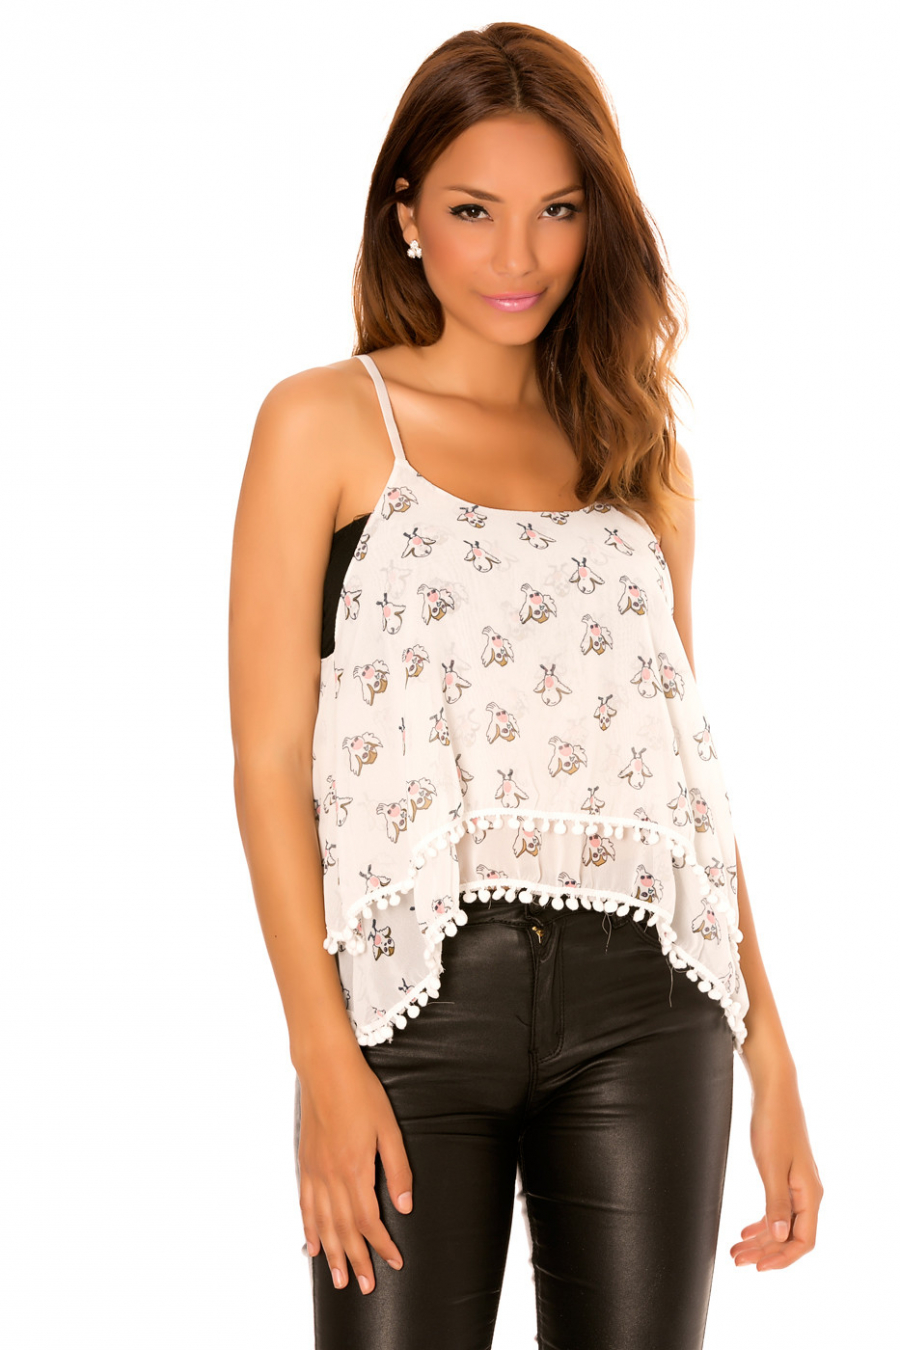 White top with thin straps, small bird patterns. MC1839-1